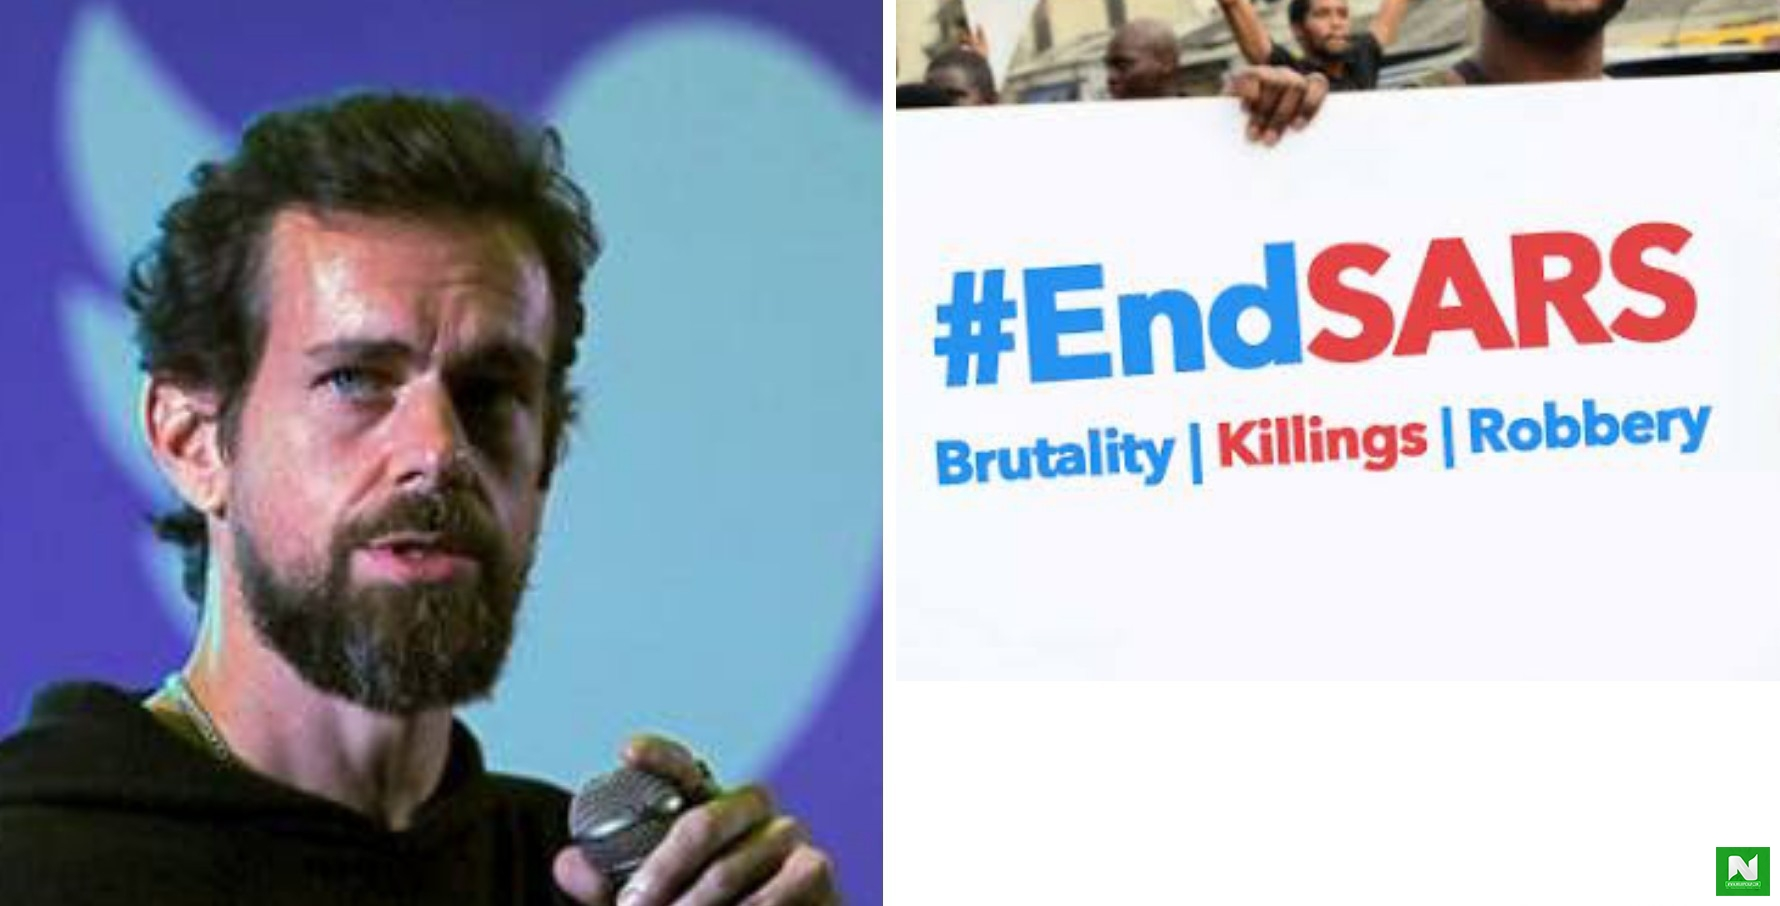 Twitter CEO Jack Dorsey Joins #EndSARS And #EndSWAT Movement